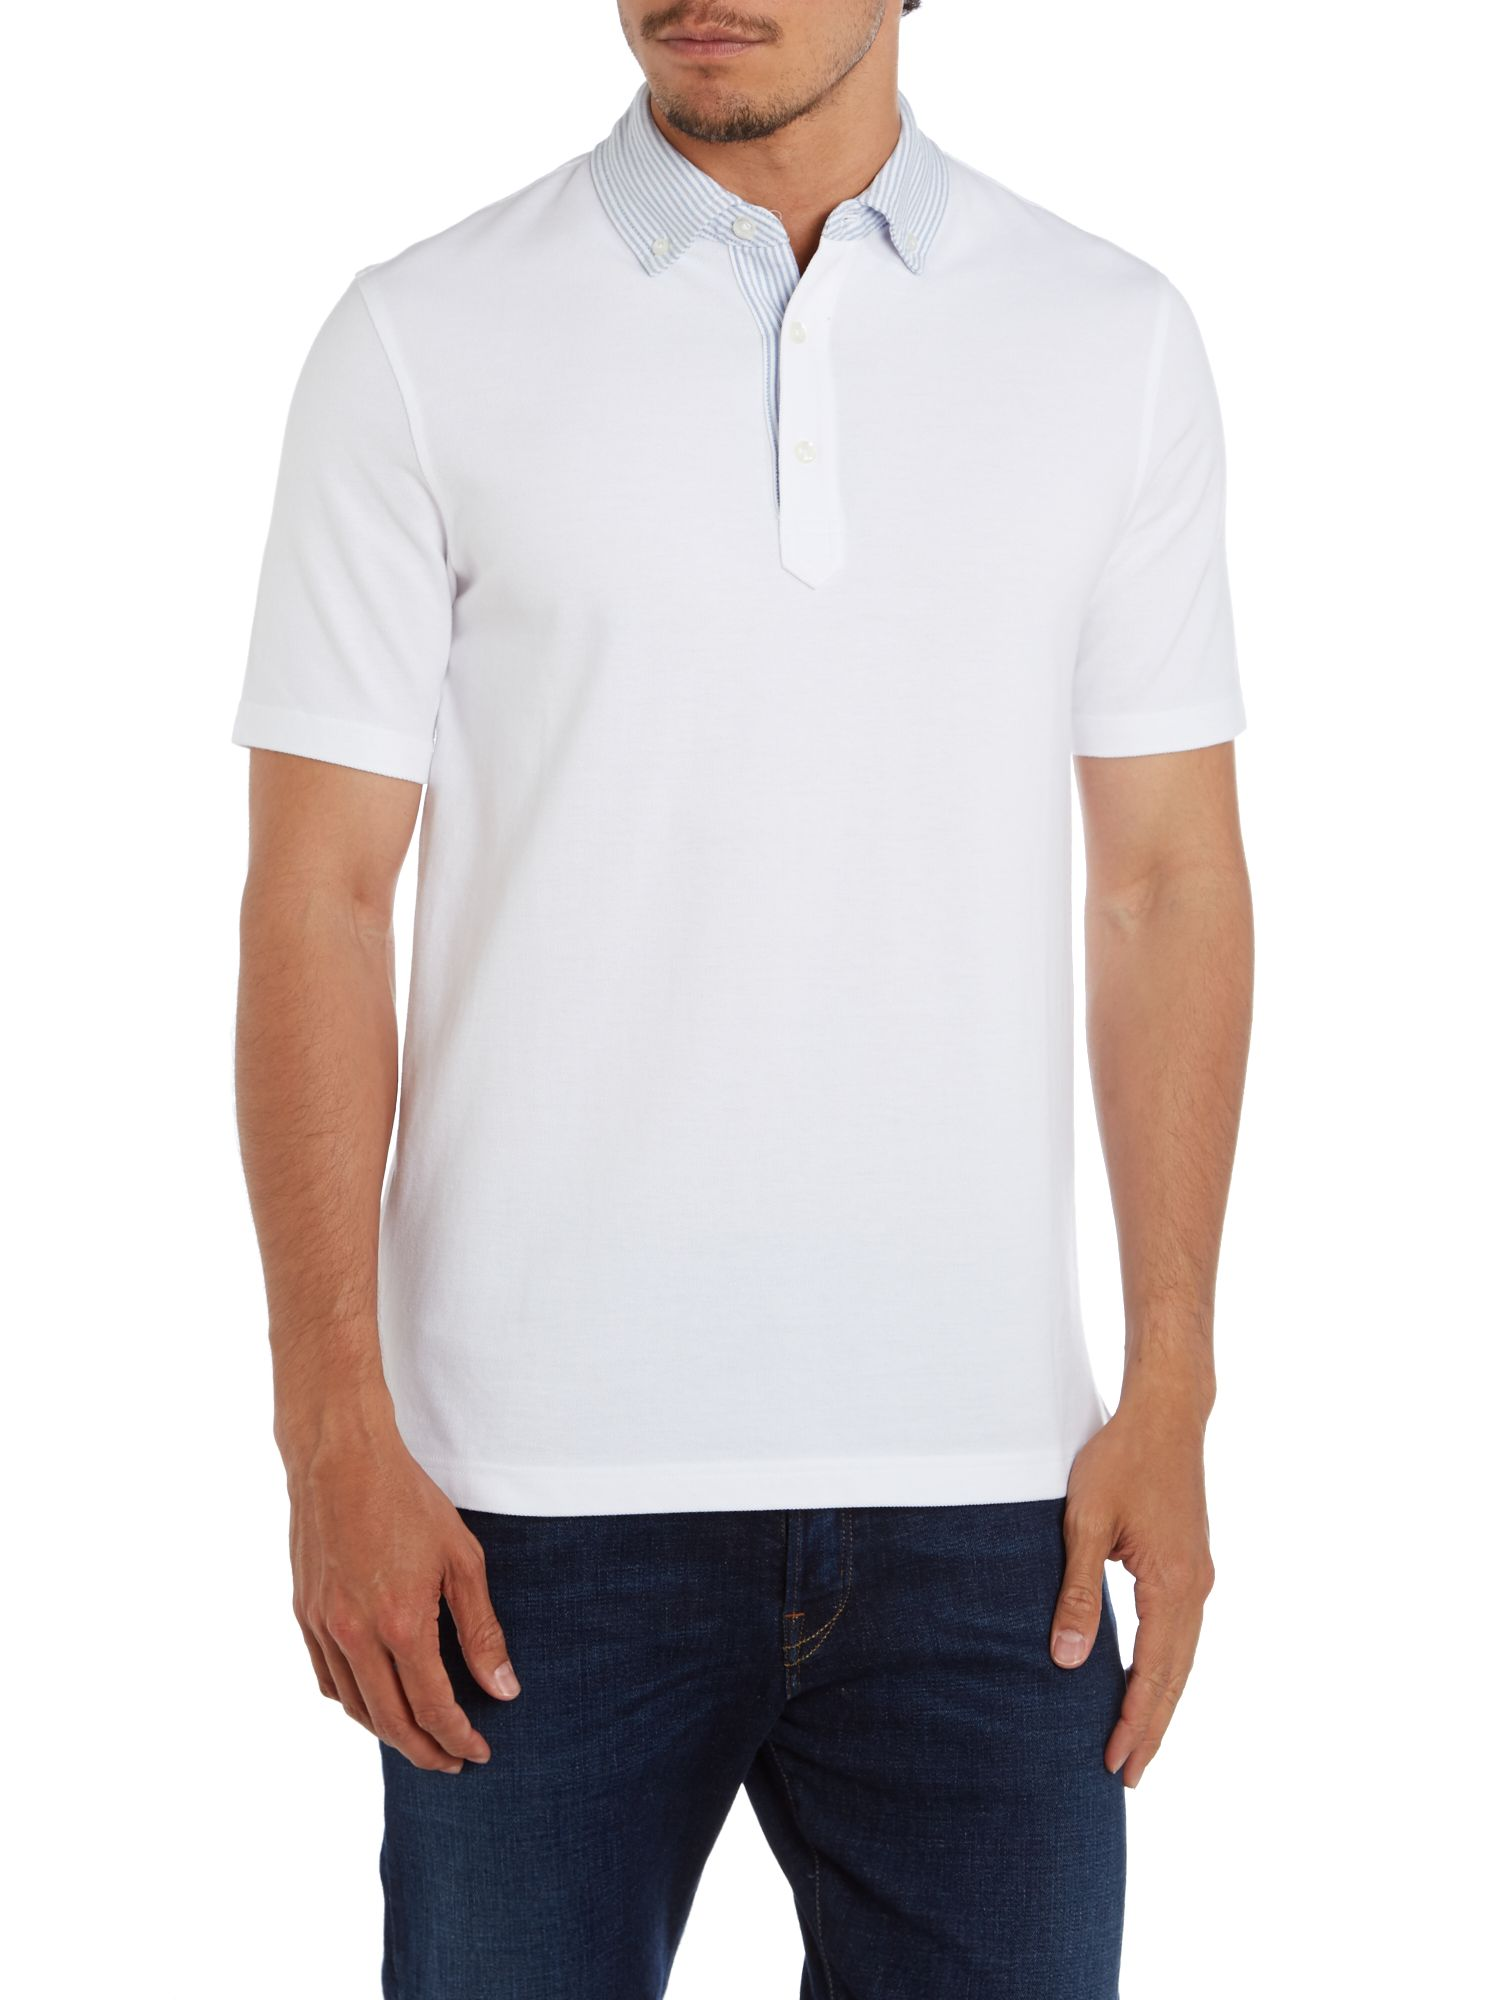 Oxford collar polo shirt